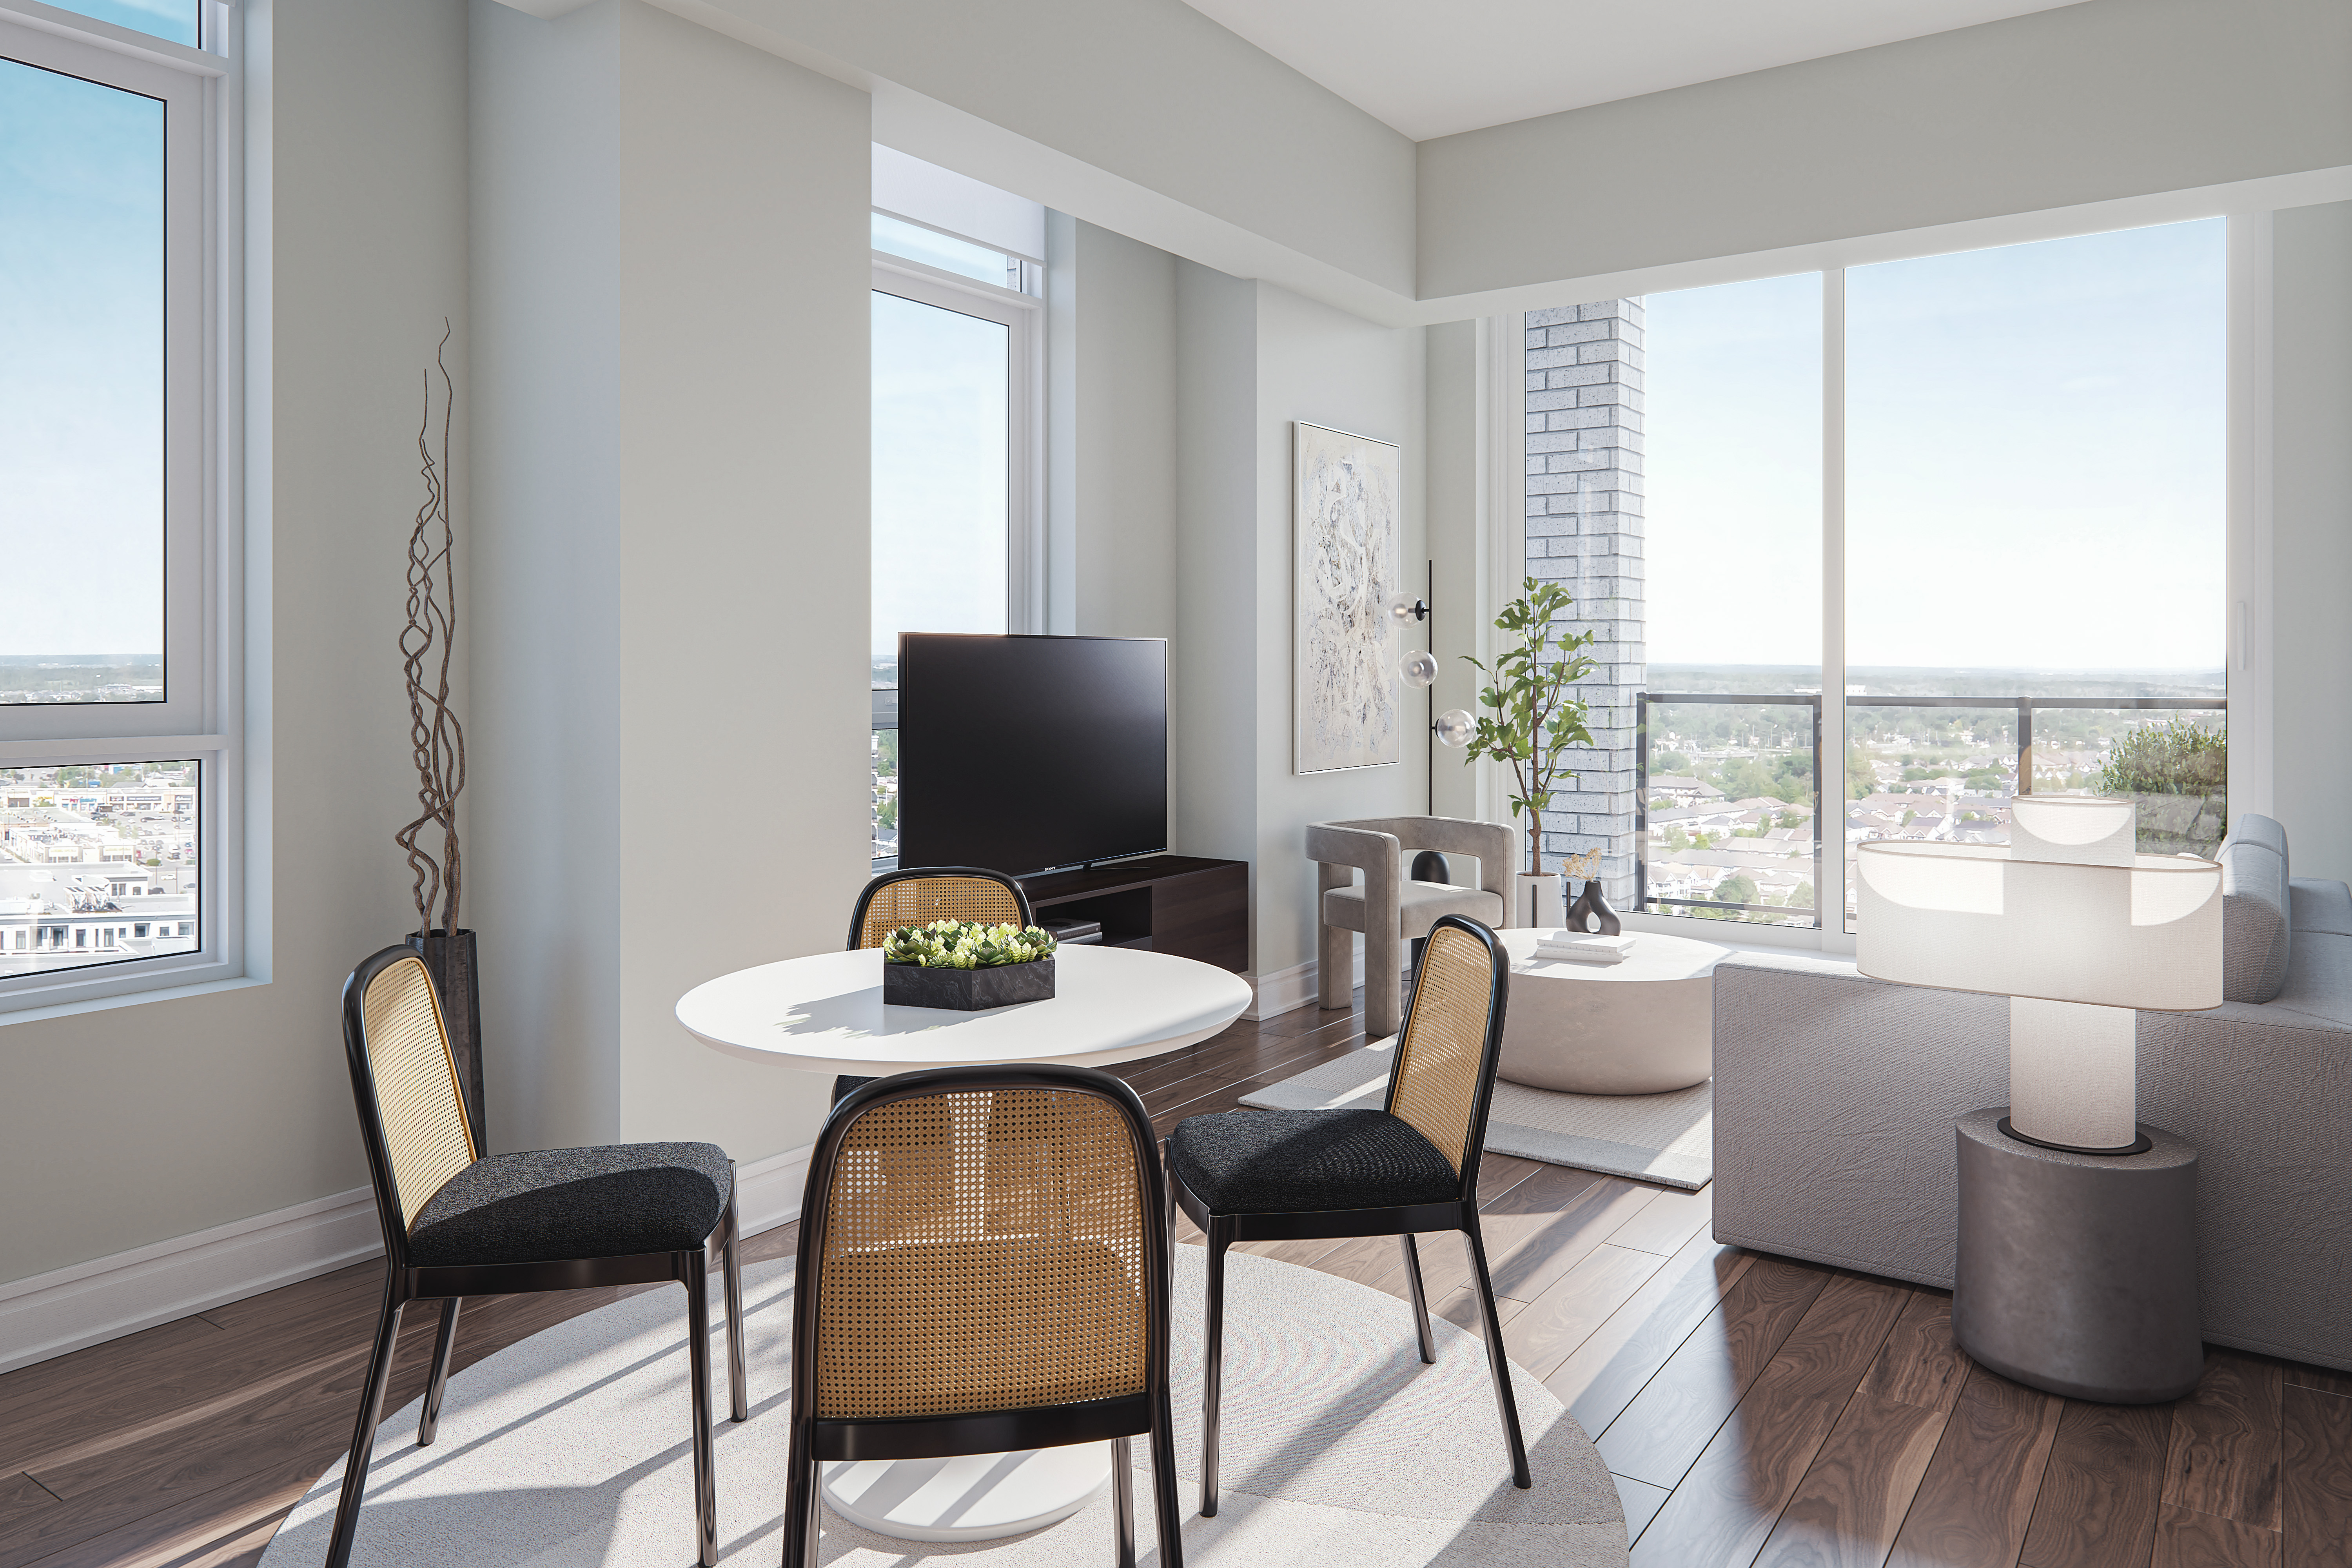 Living area rendering in virtual tour